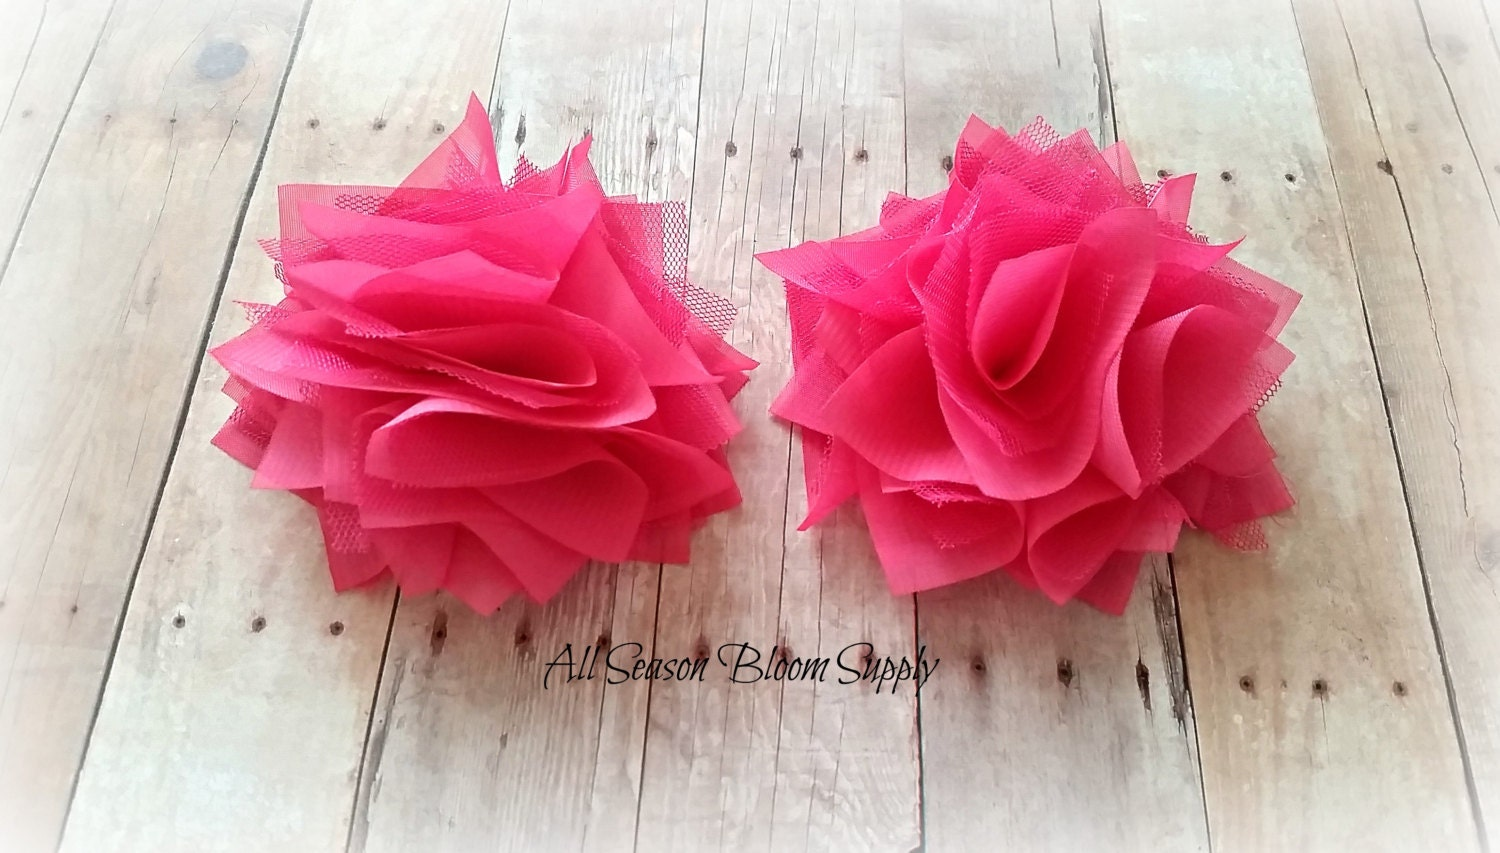 Satin Mesh Flowers Hot Pink Fabric Flower Lace Flowers Etsy